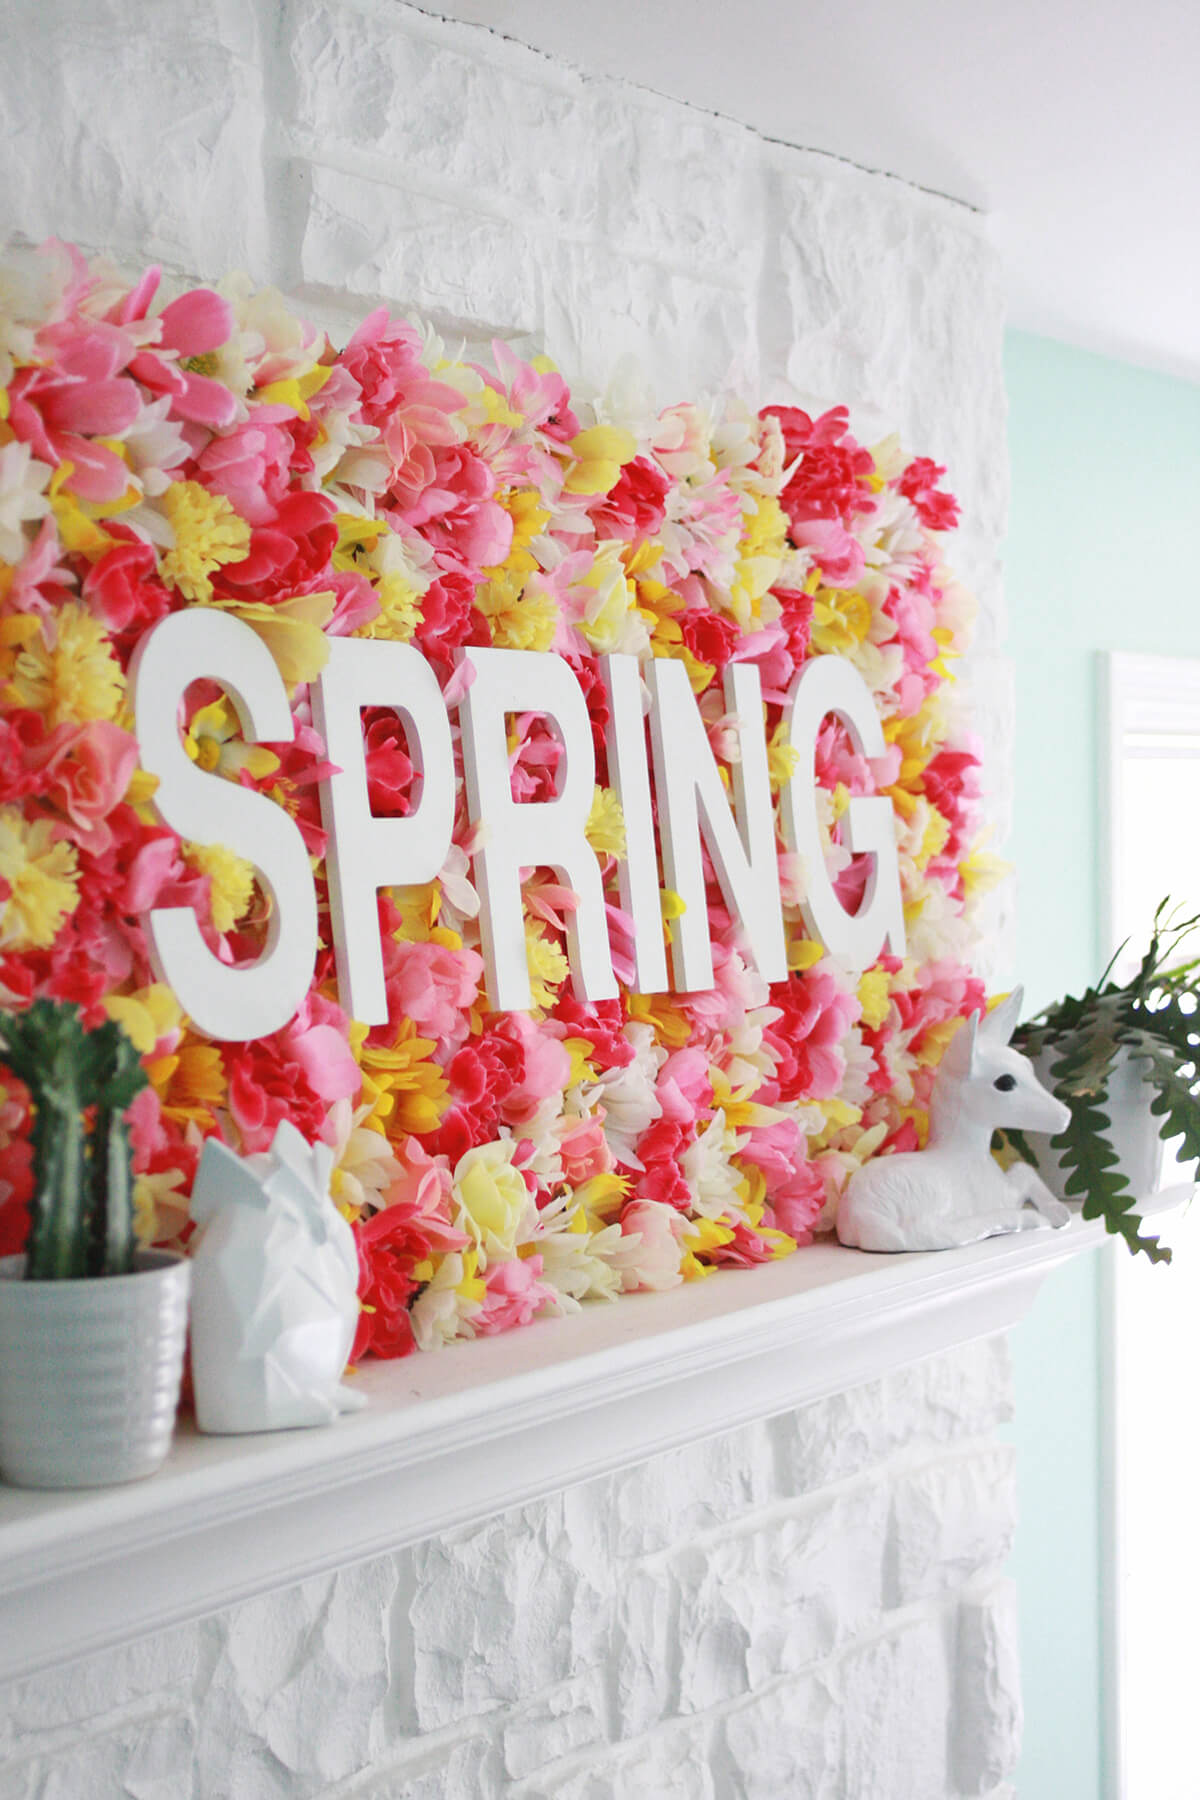 DIY Bold and Beautiful Mantle Centerpiece